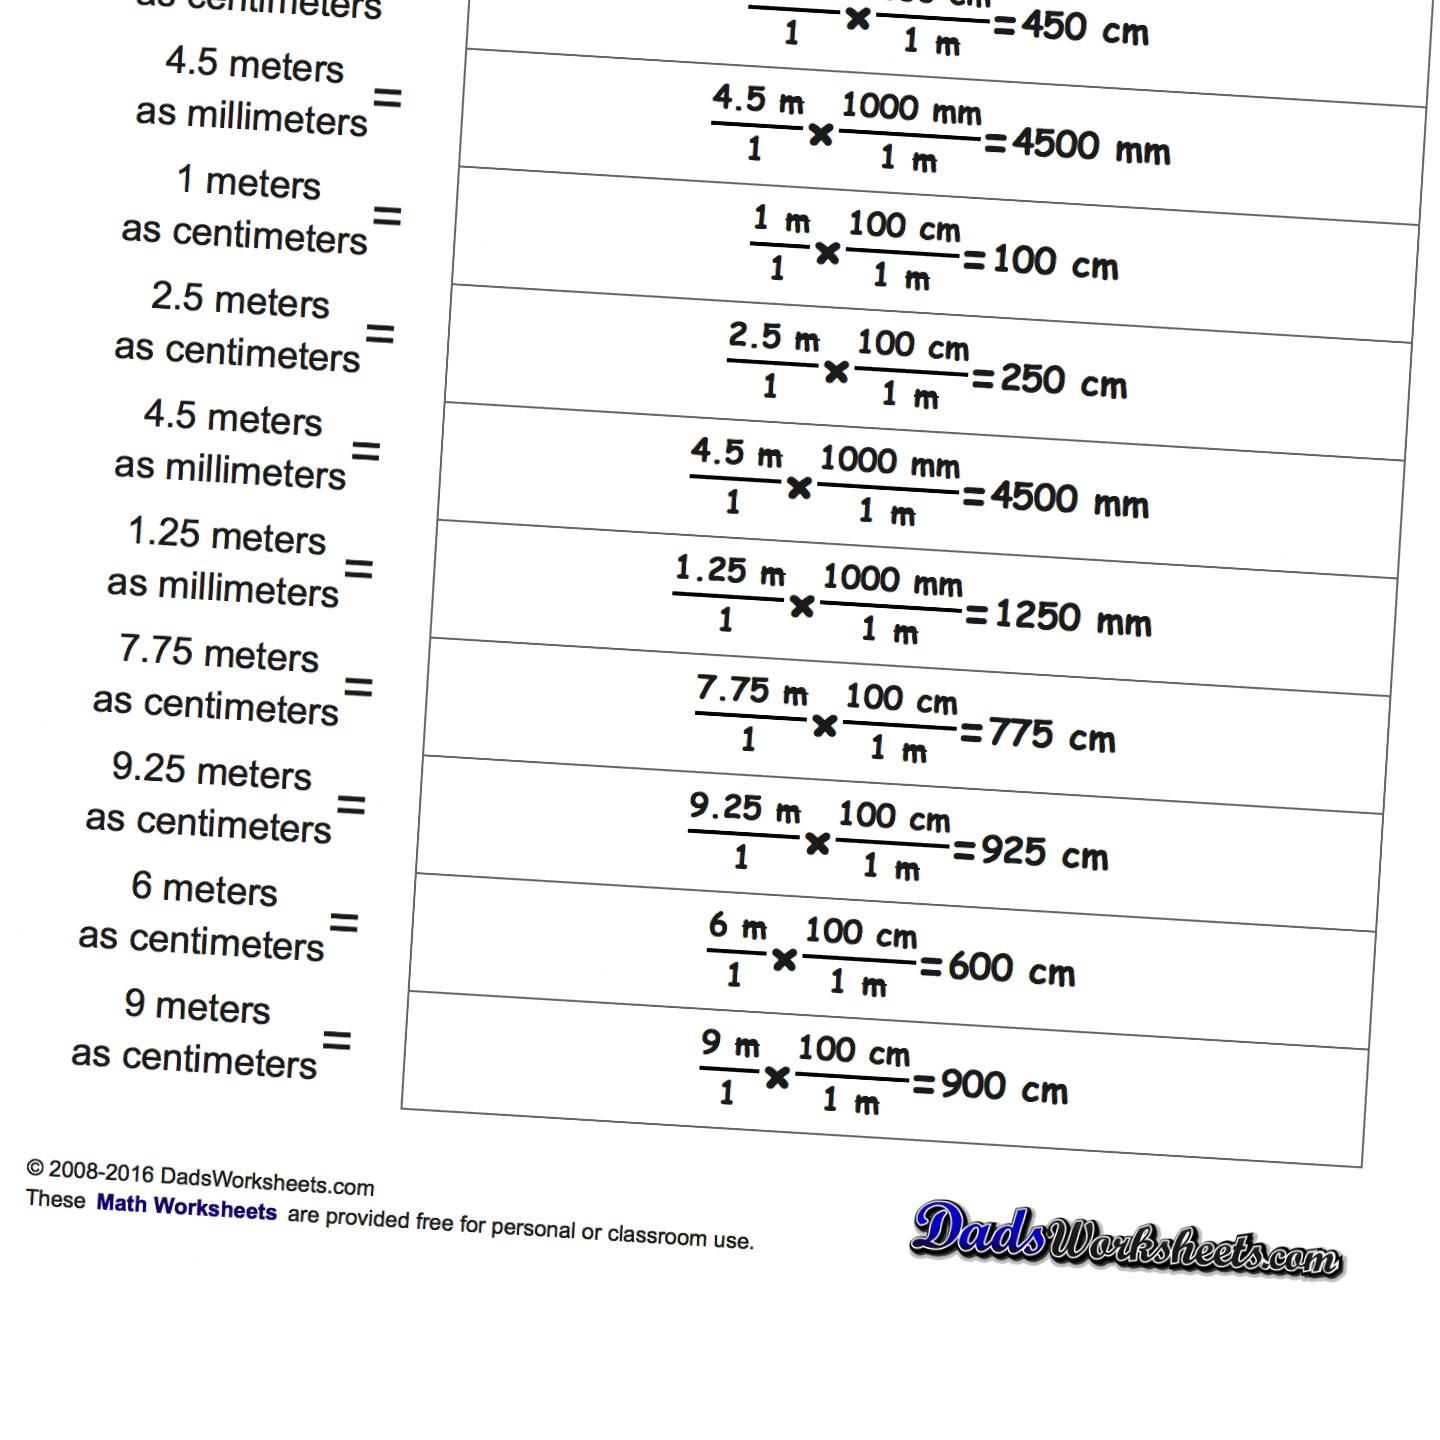 worksheet Si Unit Conversion Worksheet metric si unit conversions this page contains links to free math worksheets for si